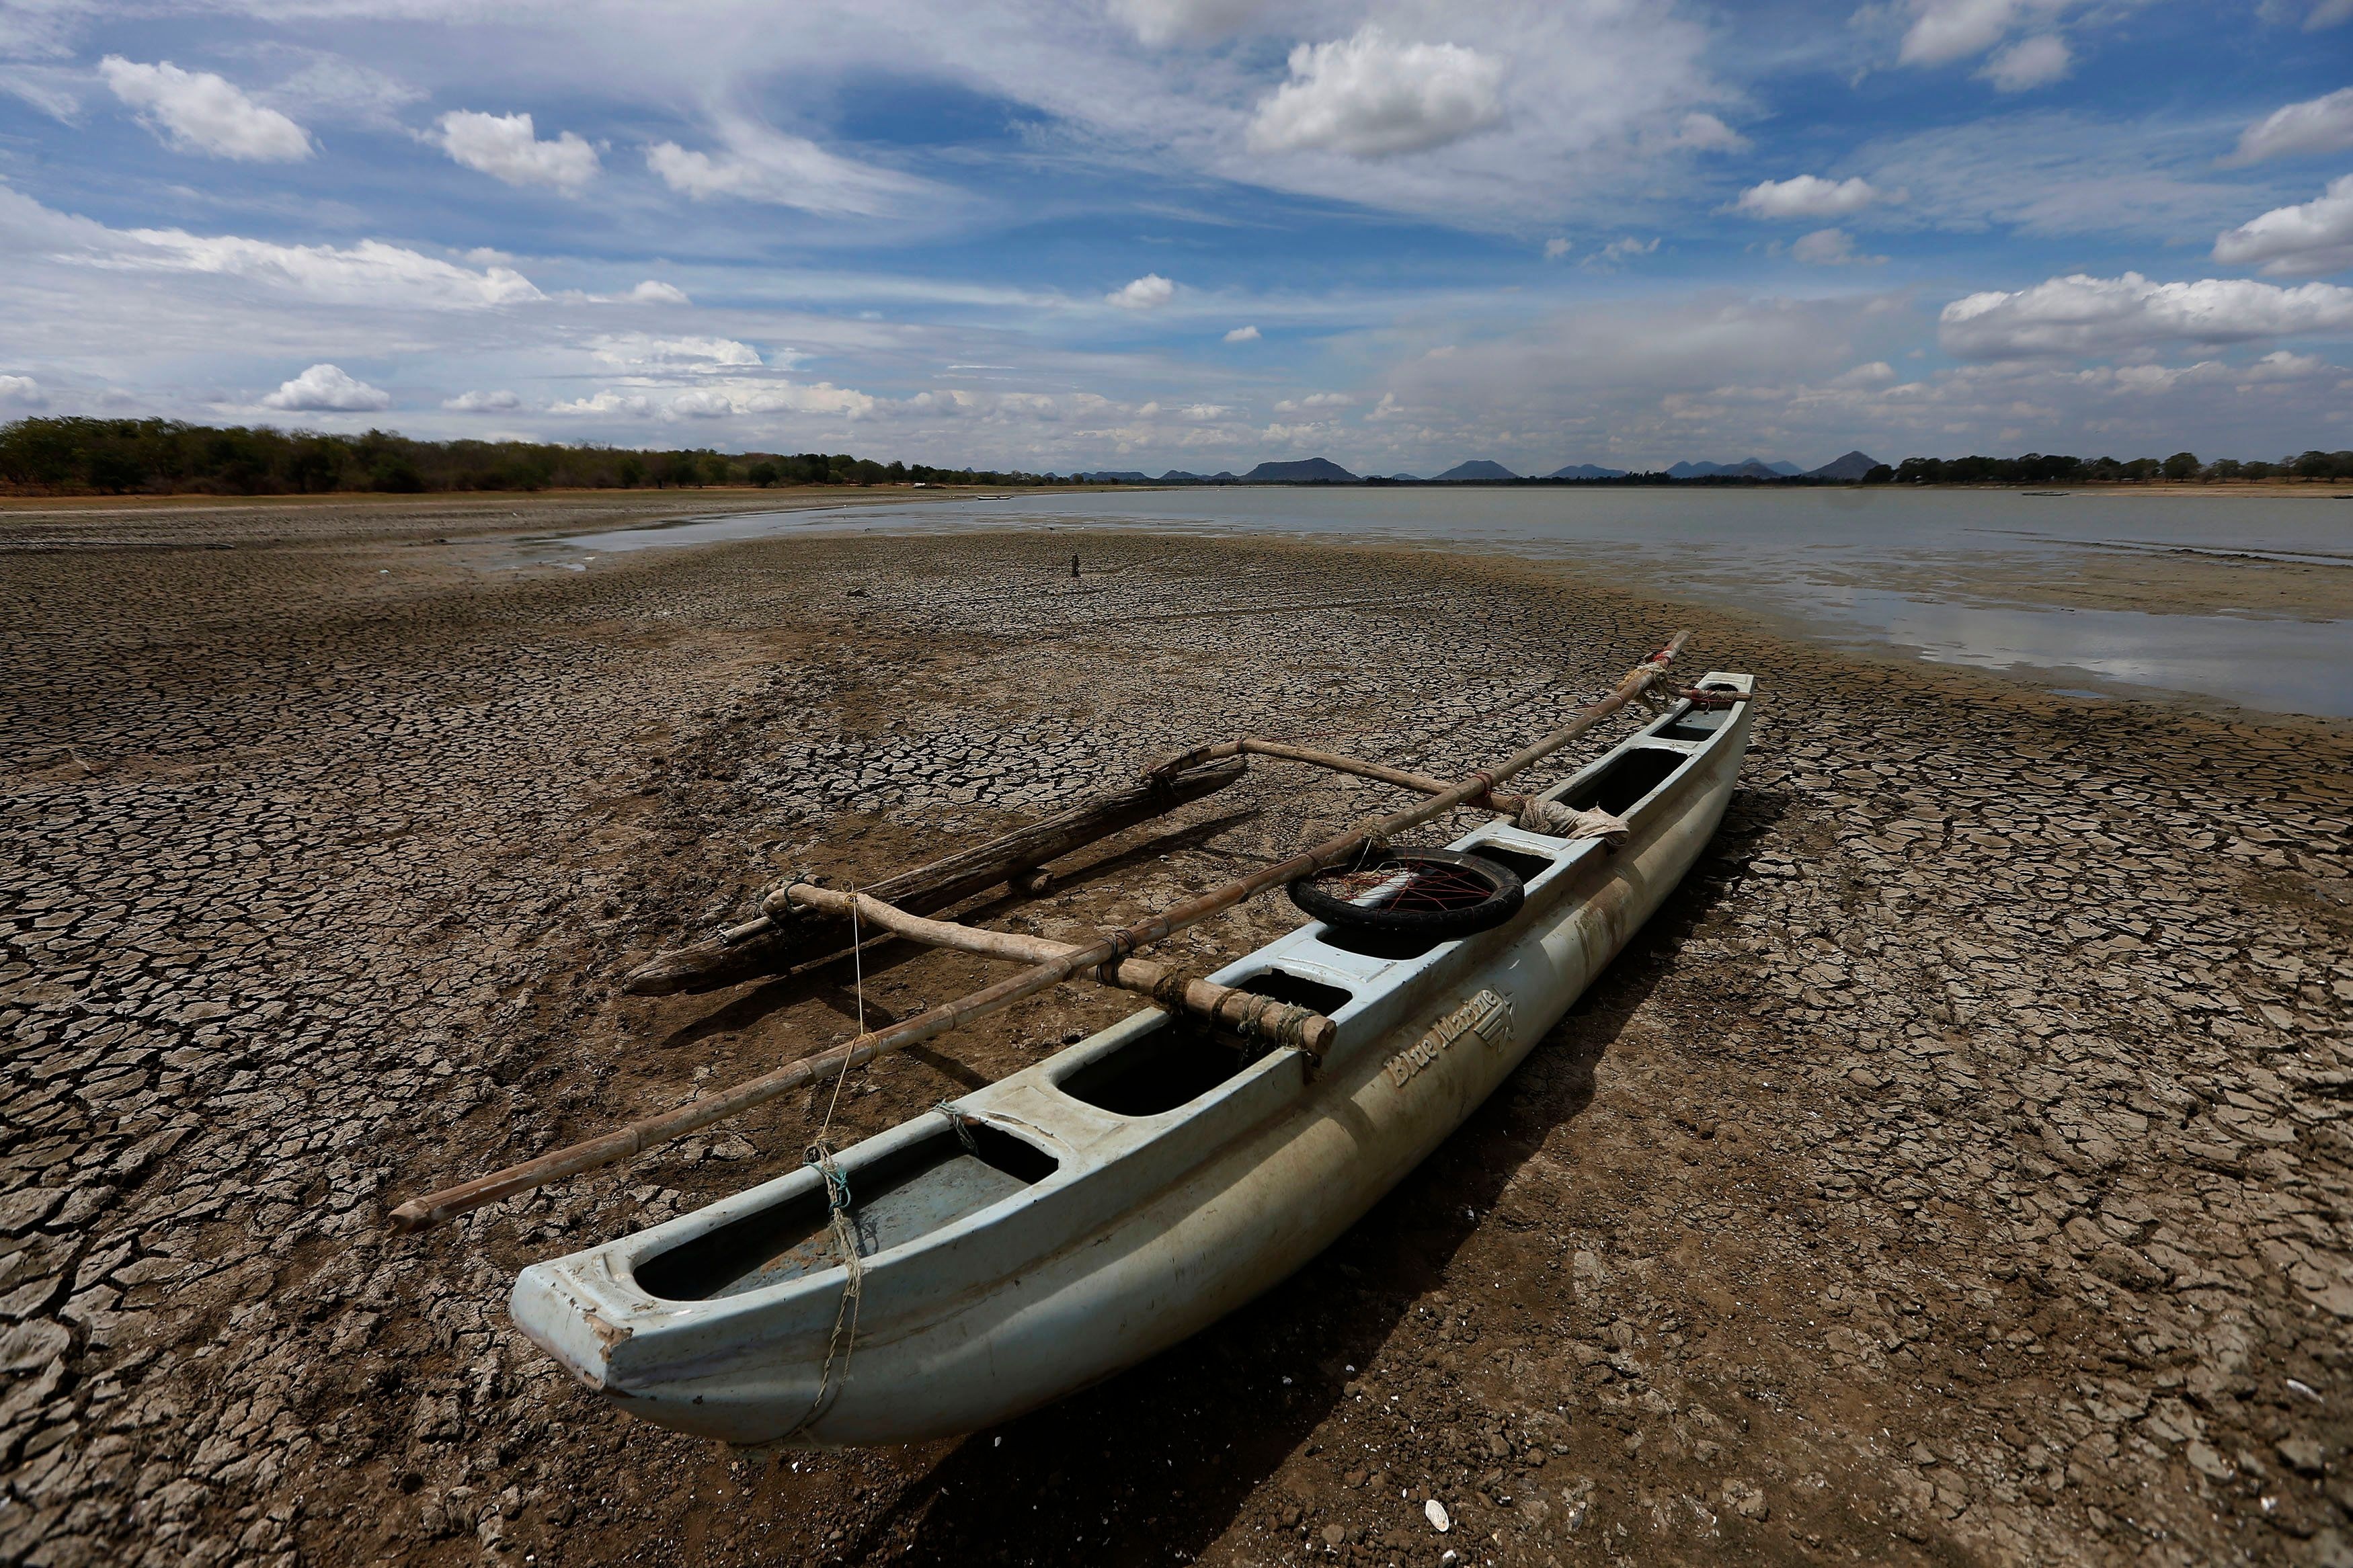 A boat is seen on the dried out bottom of a lagoon in Katharagama August 21, 2014. Sri Lanka's annual inflation rate should not increase sharply due to an extended drought and the government is ready to mitigate any inflationary risks arising from the bad weather, top officials said. REUTERS/Dinuka Liyanawatte (SRI LANKA - Tags: BUSINESS SOCIETY ENVIRONMENT TPX IMAGES OF THE DAY)